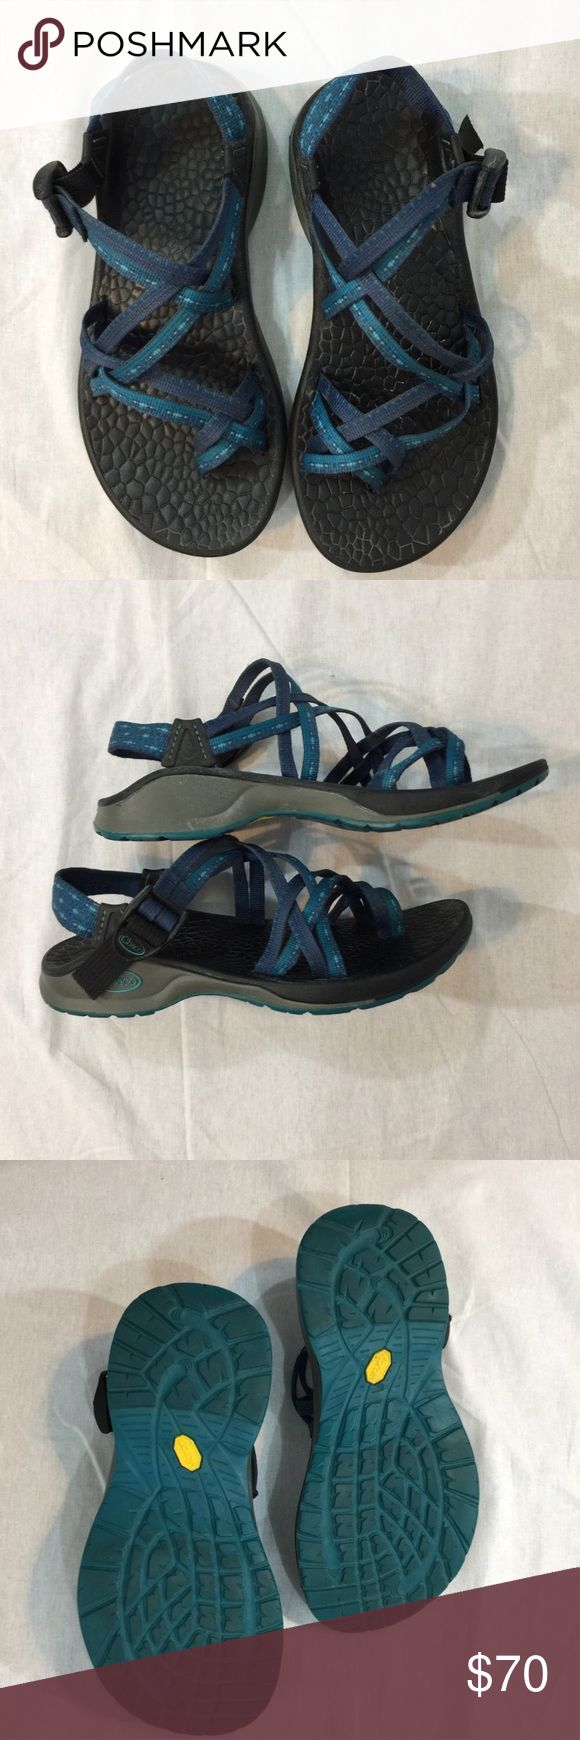 New light weight Chacos ✨ These are the Z/volv x2 so they are way lighter then reg chacos. I just ordered them online and tried to wear them on a hike and they are too big for me I need a 6.5! Chacos Shoes Sandals